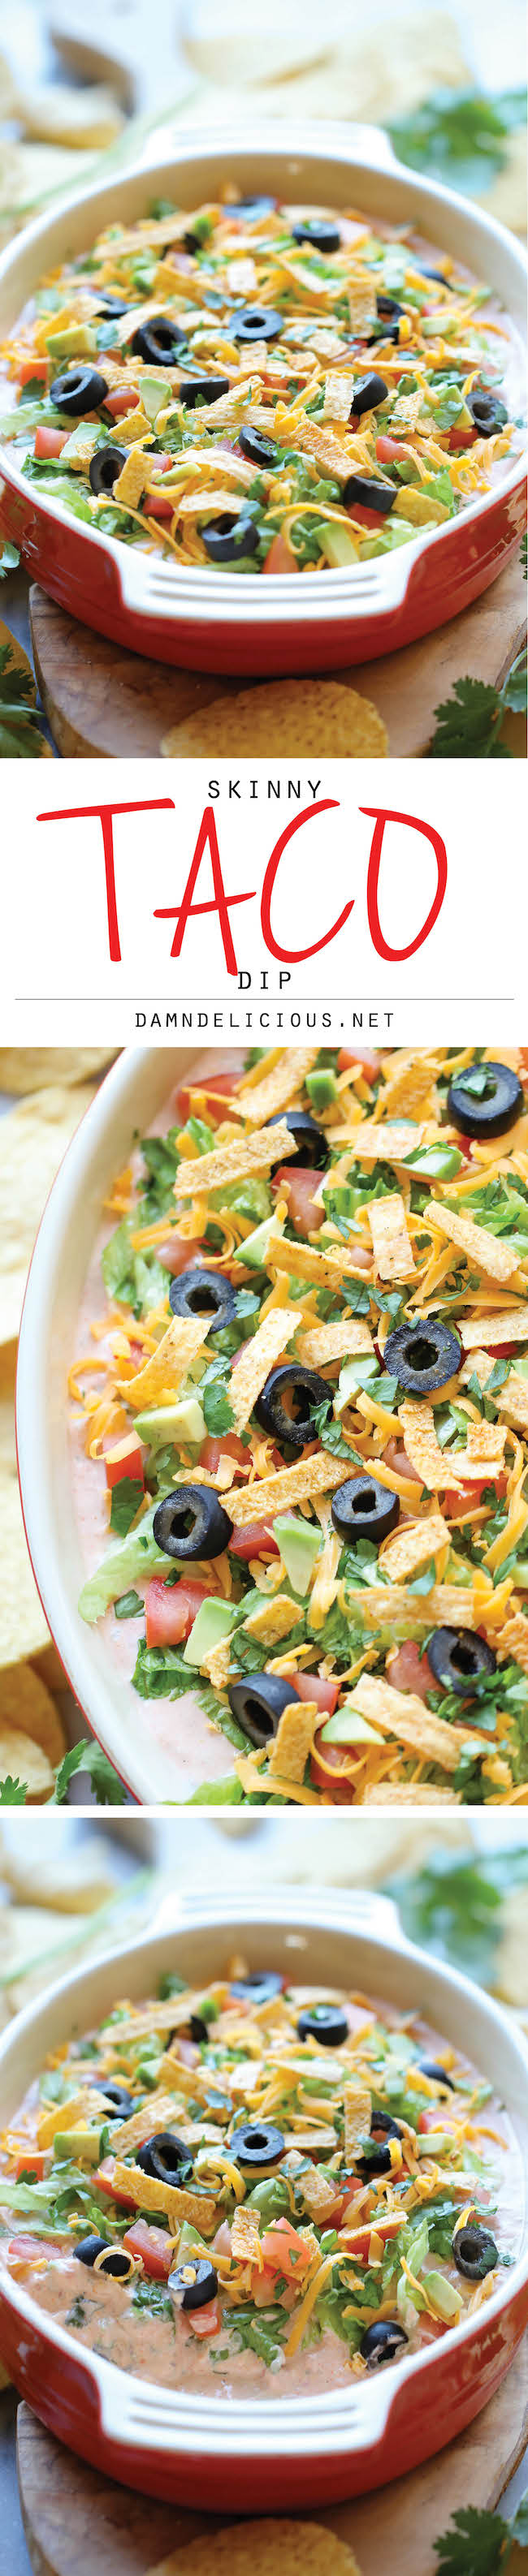 Skinny Taco Dip - Skip the guilt in this lightened up, super easy, 10 ...